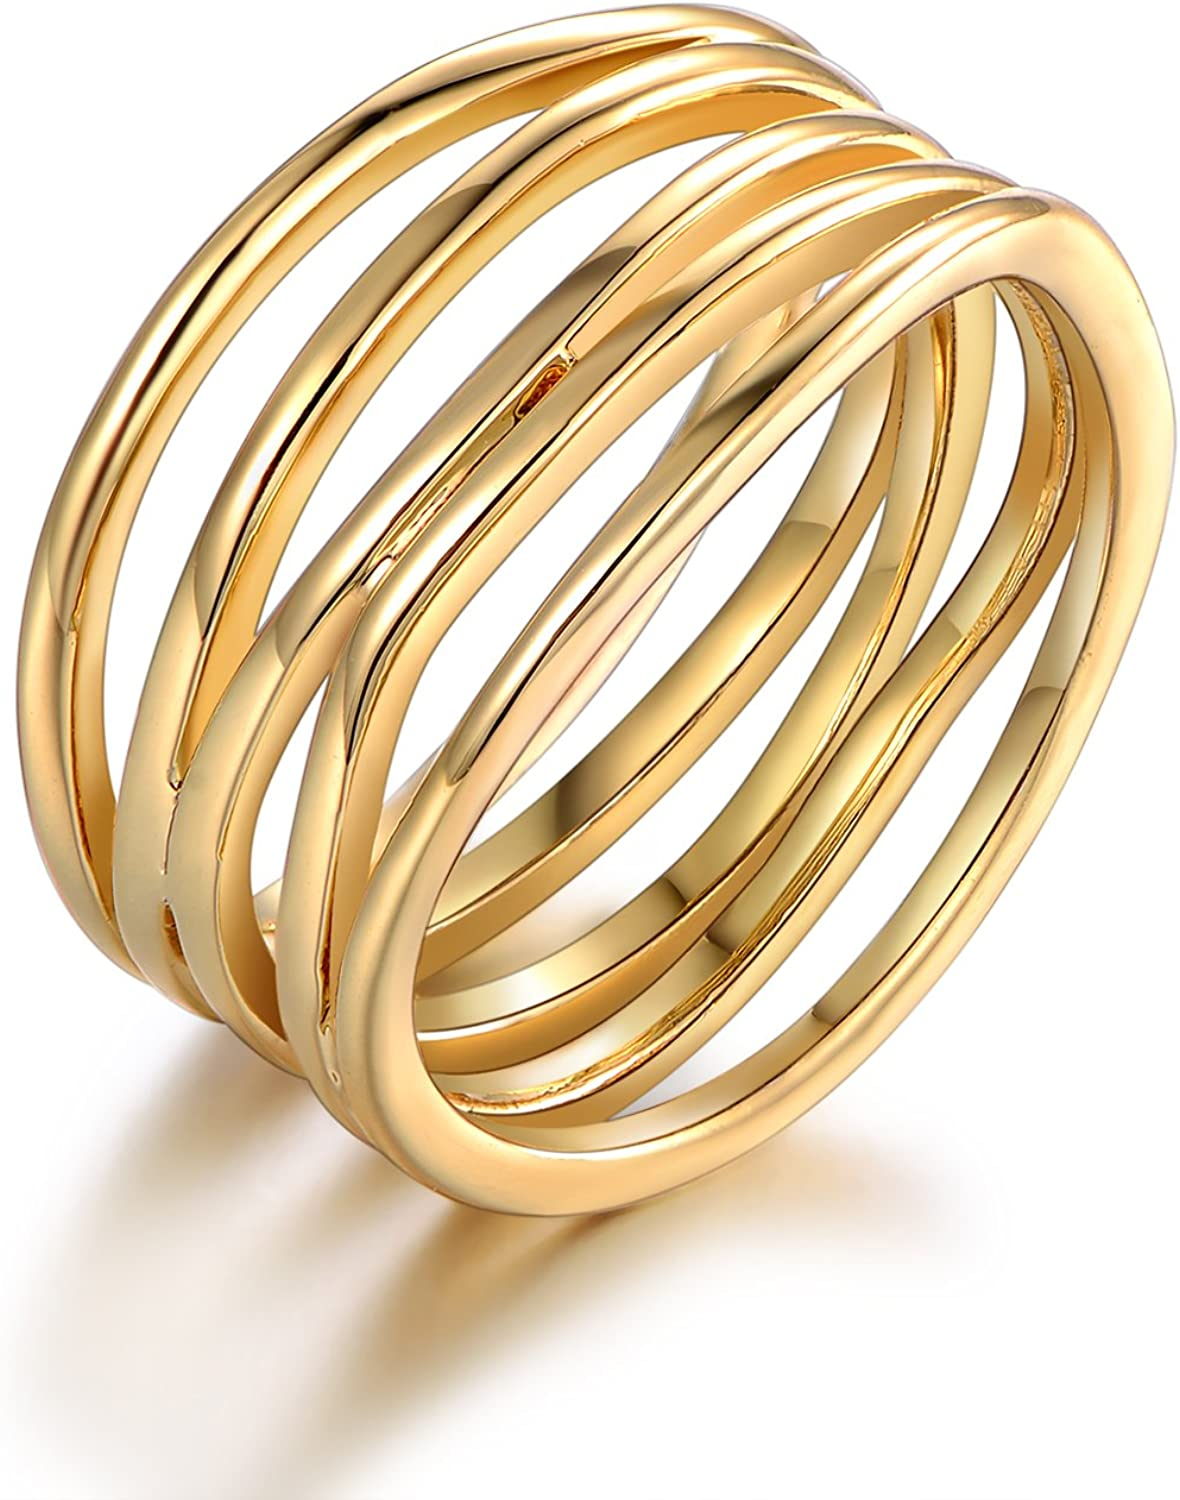 Barzel Gold, Rose Gold & White Gold Plated Statement Ring